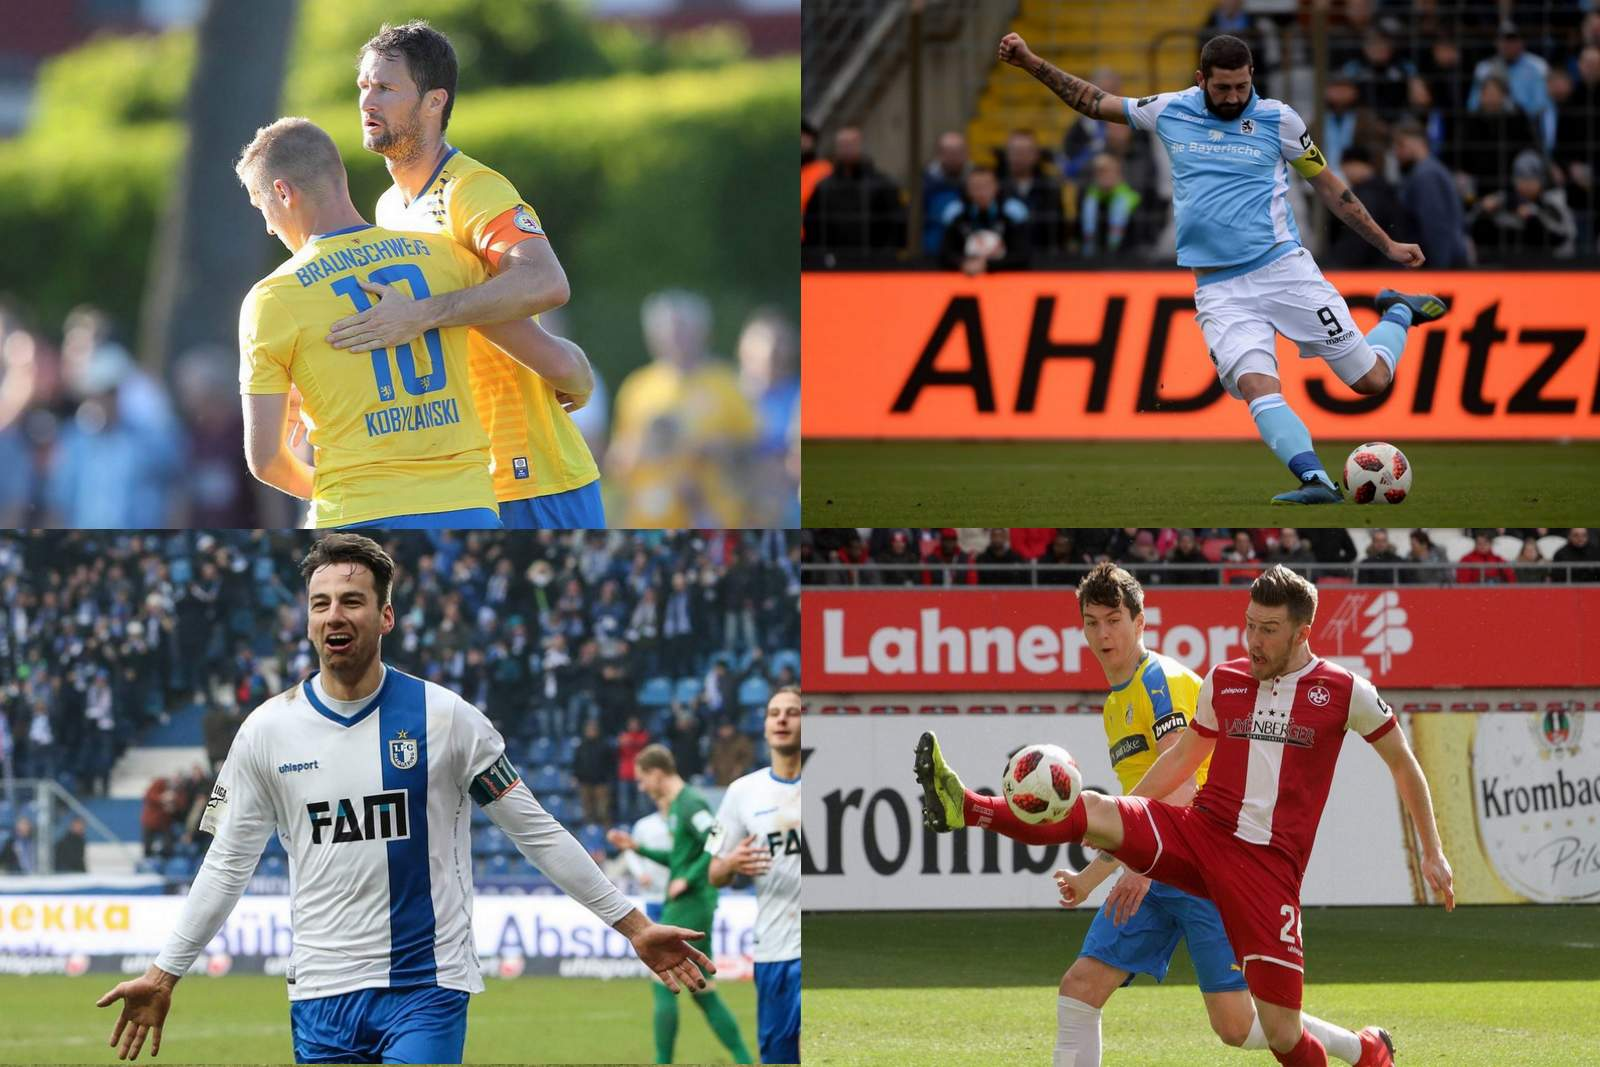 3. liga, 4. spieltag, collage